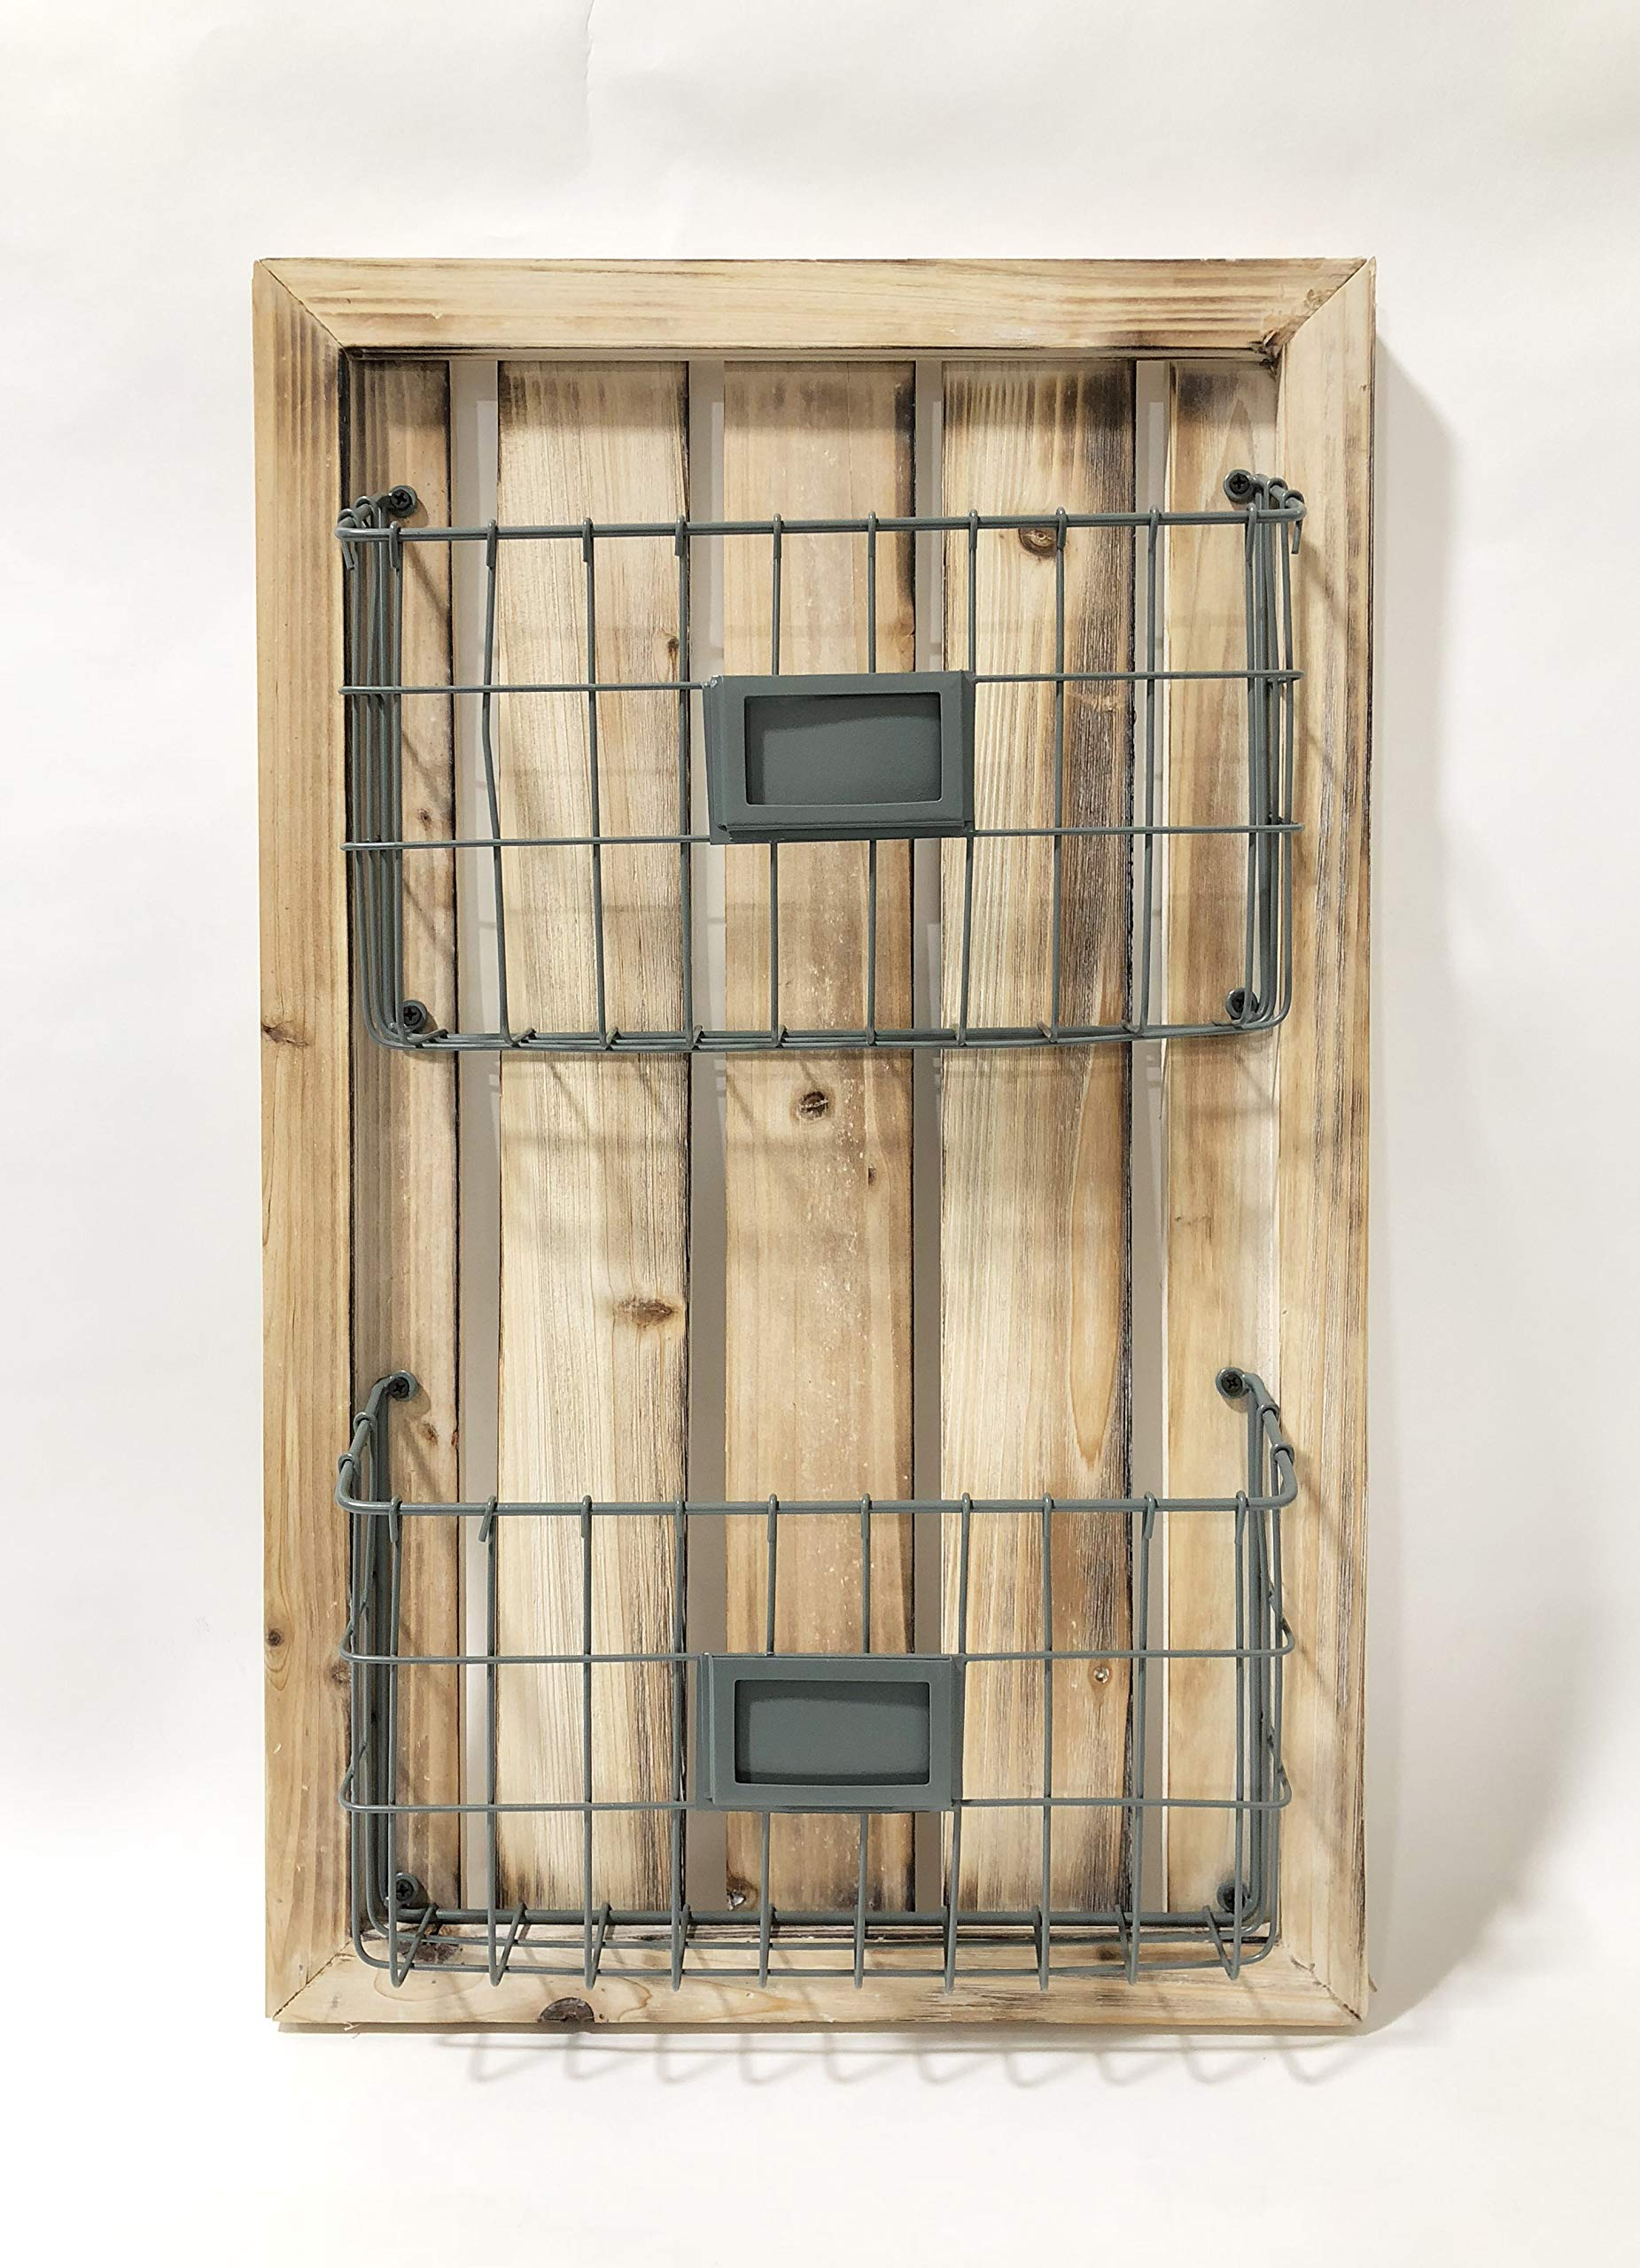 Designstyles Two Tier Magazine Holder - Wall Mounted Rack with Durable Wooden Frame and Pewter Colored Metal Baskets - Organizes Files, Books, Letters, and Folders by Designstyles